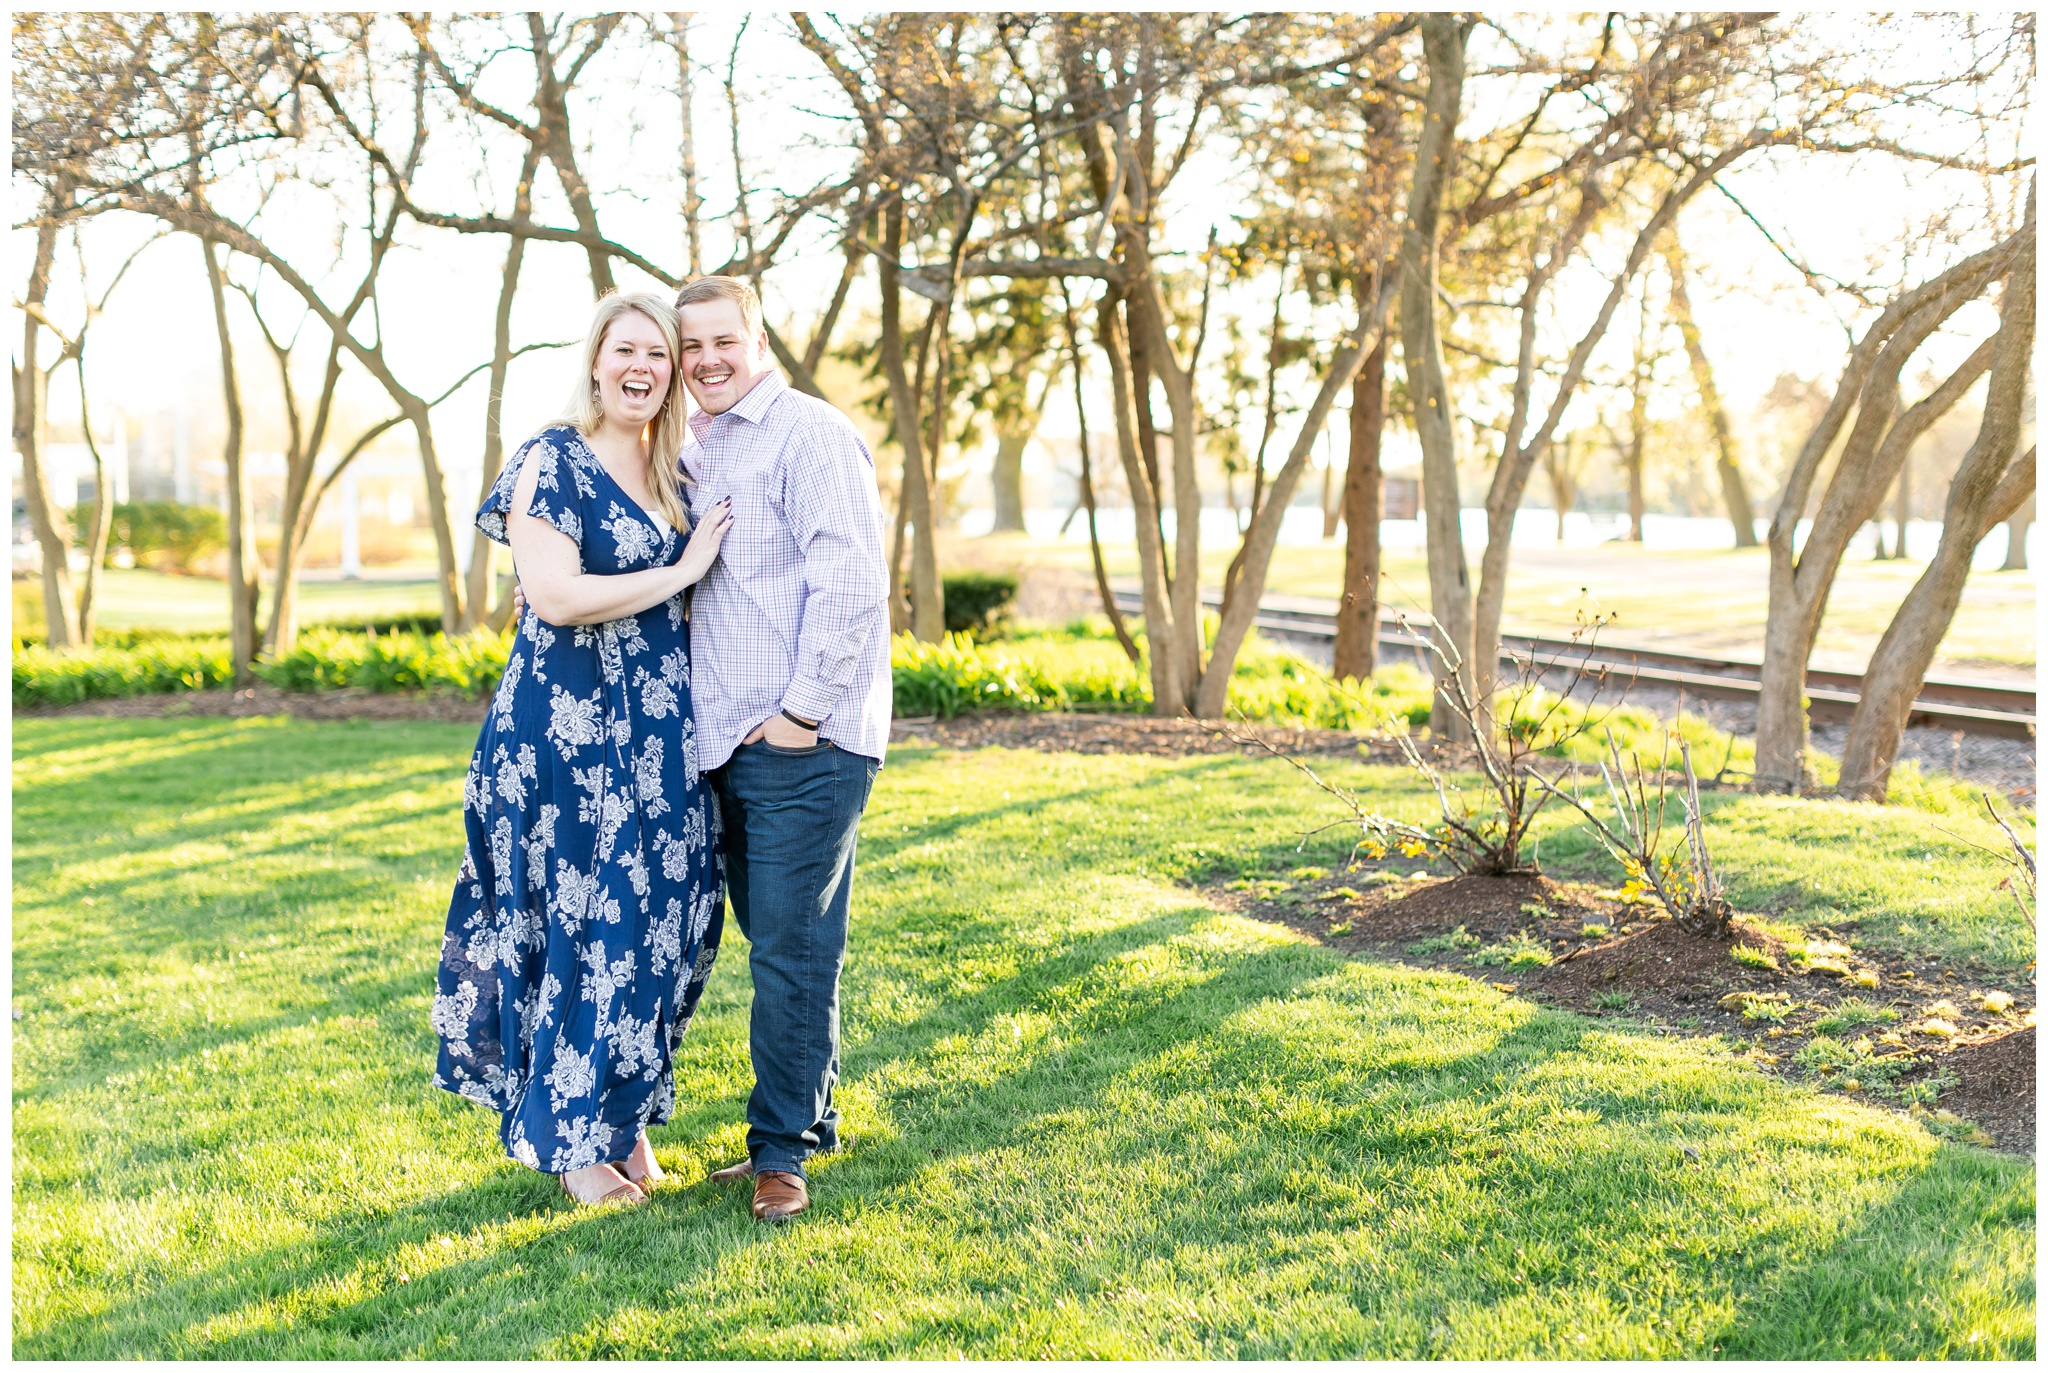 nicholas_conservatory_engagement_session_rockford_illinois_caynay_photo_2991.jpg